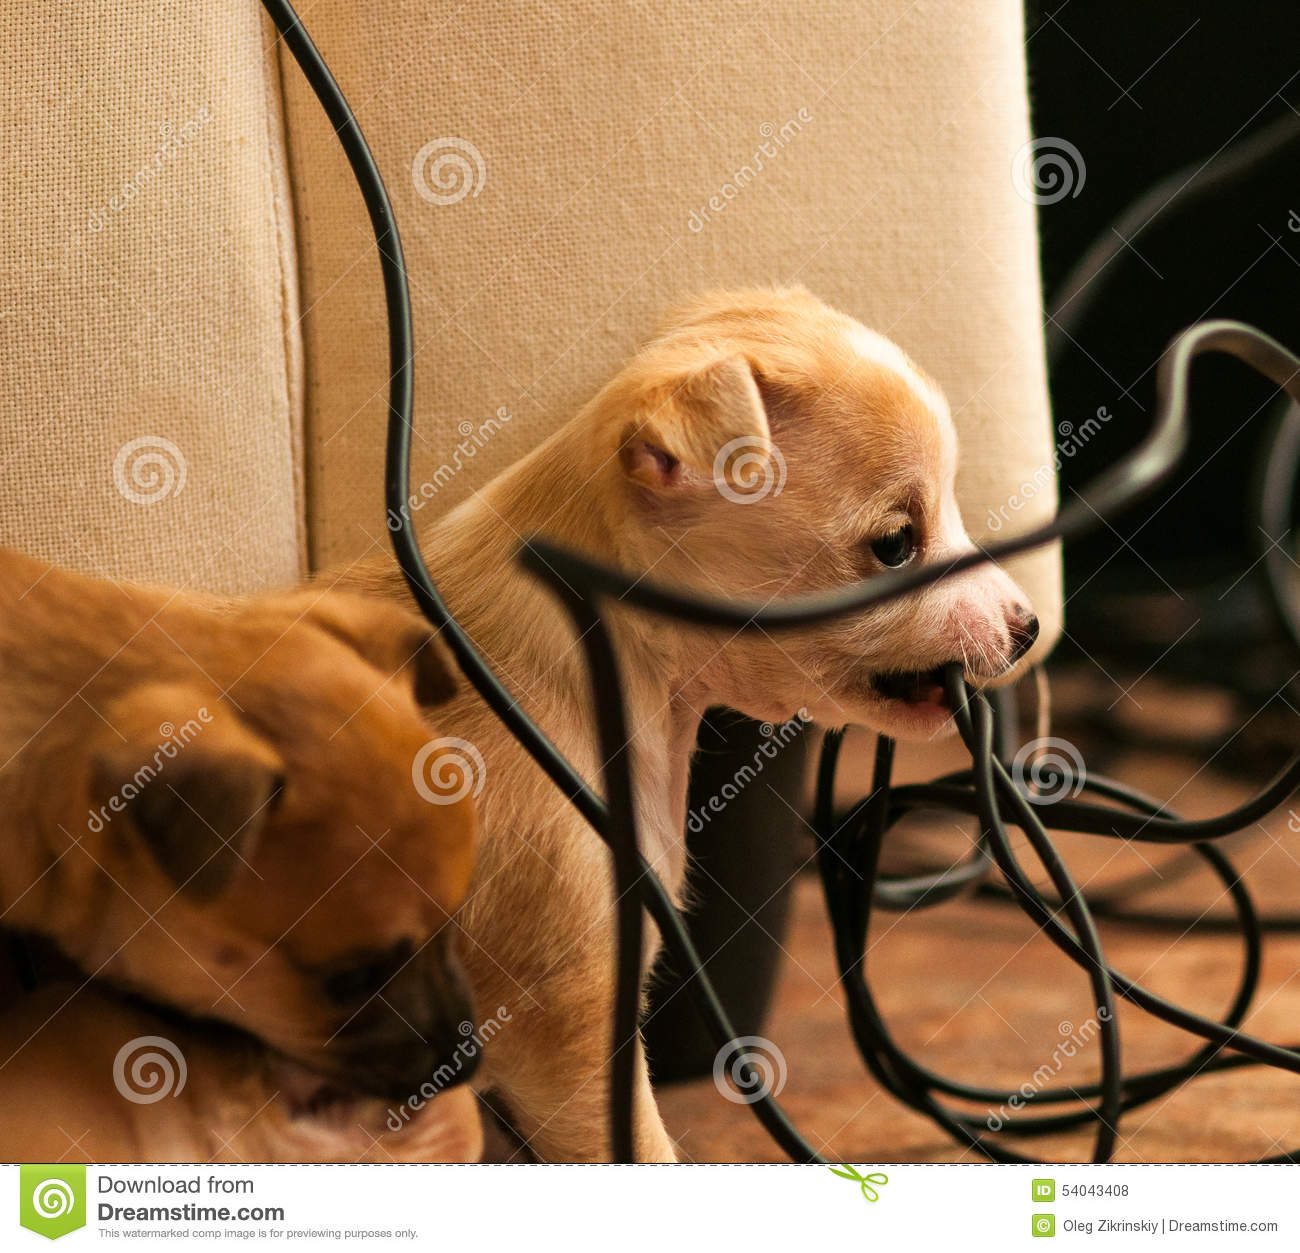 Puppy Chewing Electric Cord Stock Photo - Image of animal, wire ...